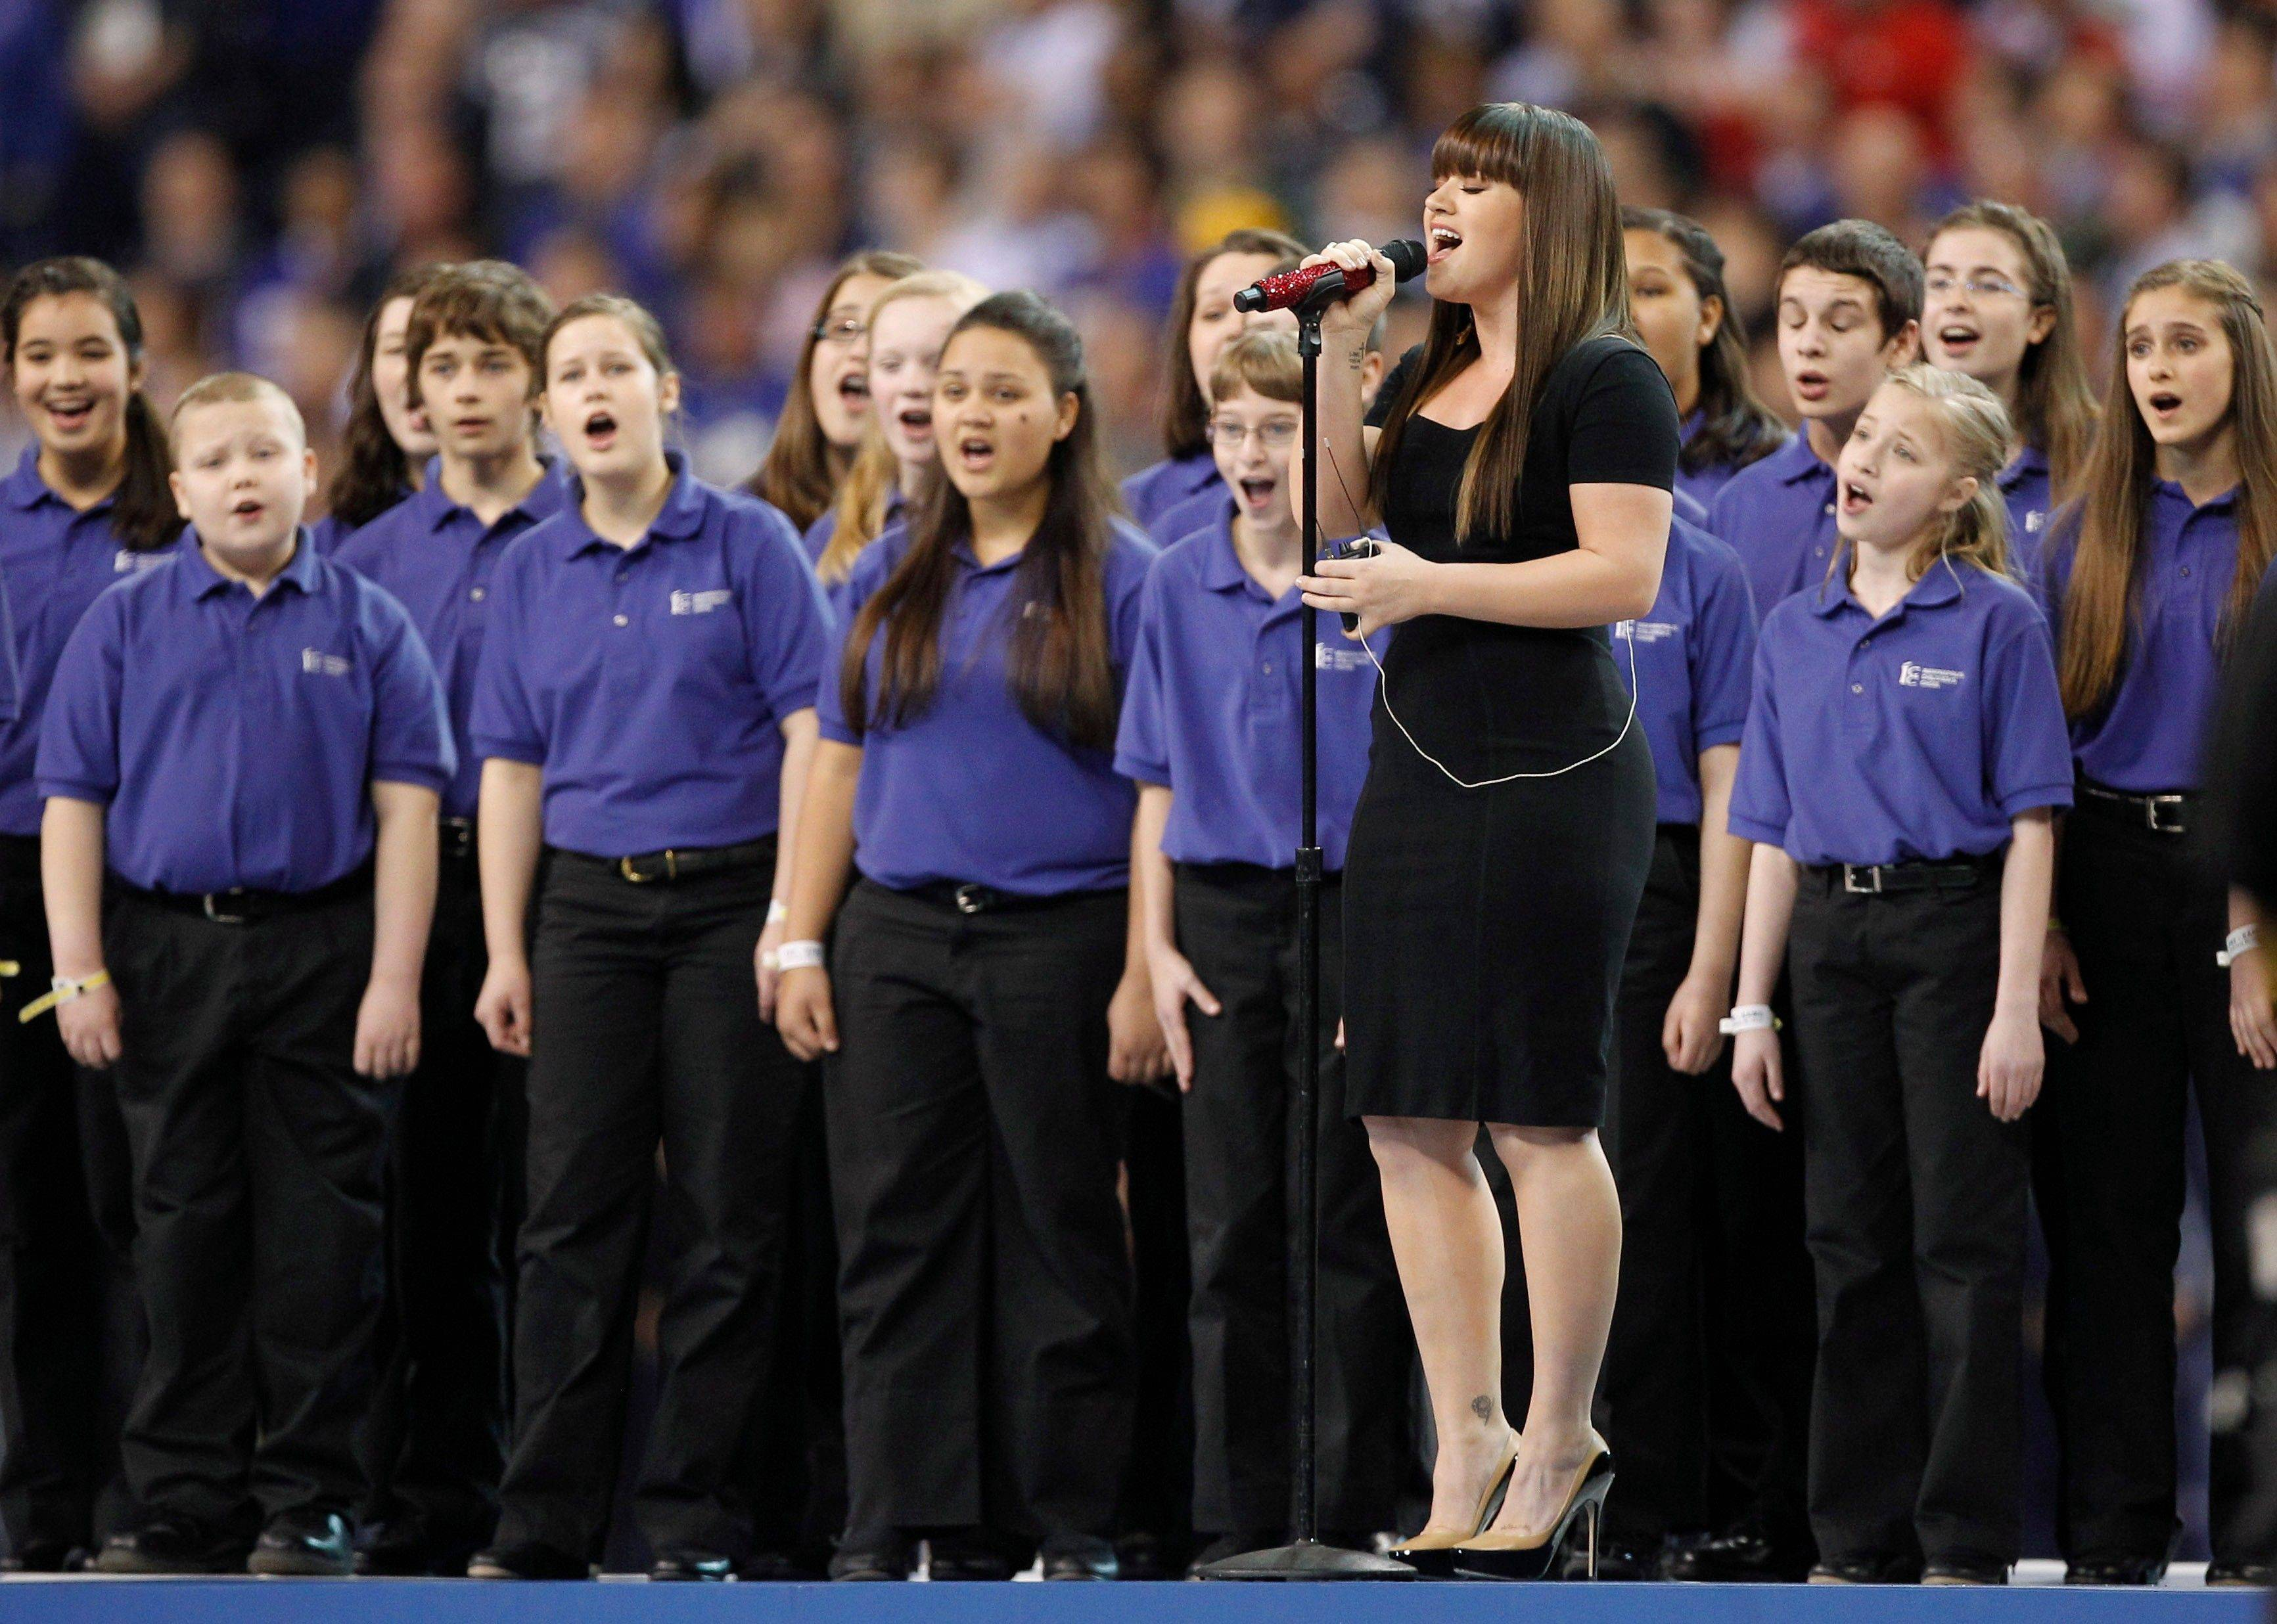 Kelly Clarkson sings the national anthem with the Indianapolis Children's Choir before the NFL Super Bowl XLVI football game between the New York Giants and the New England Patriots Sunday in Indianapolis.